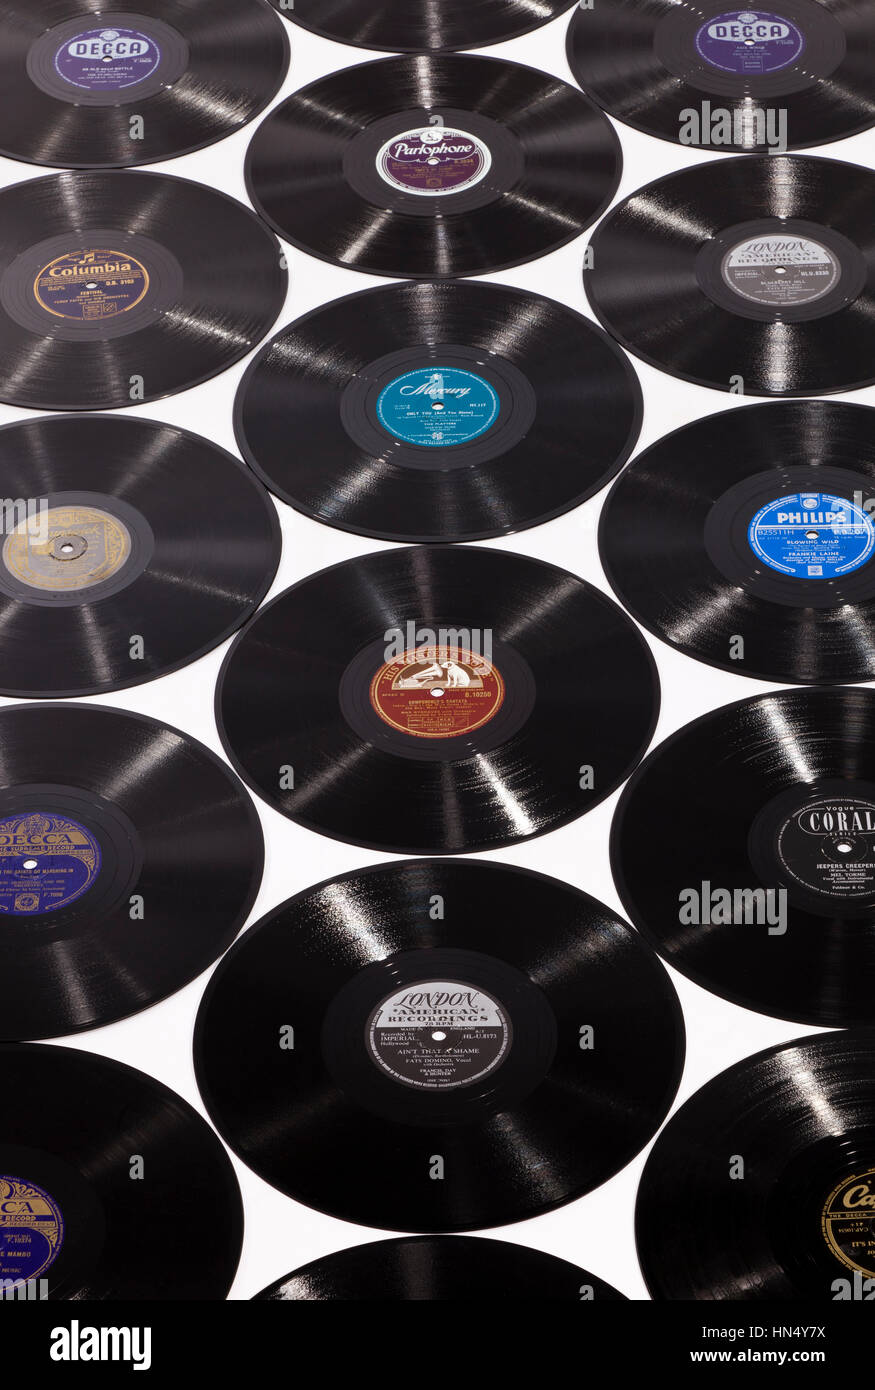 78 Rpm Records Stock Photos Amp 78 Rpm Records Stock Images